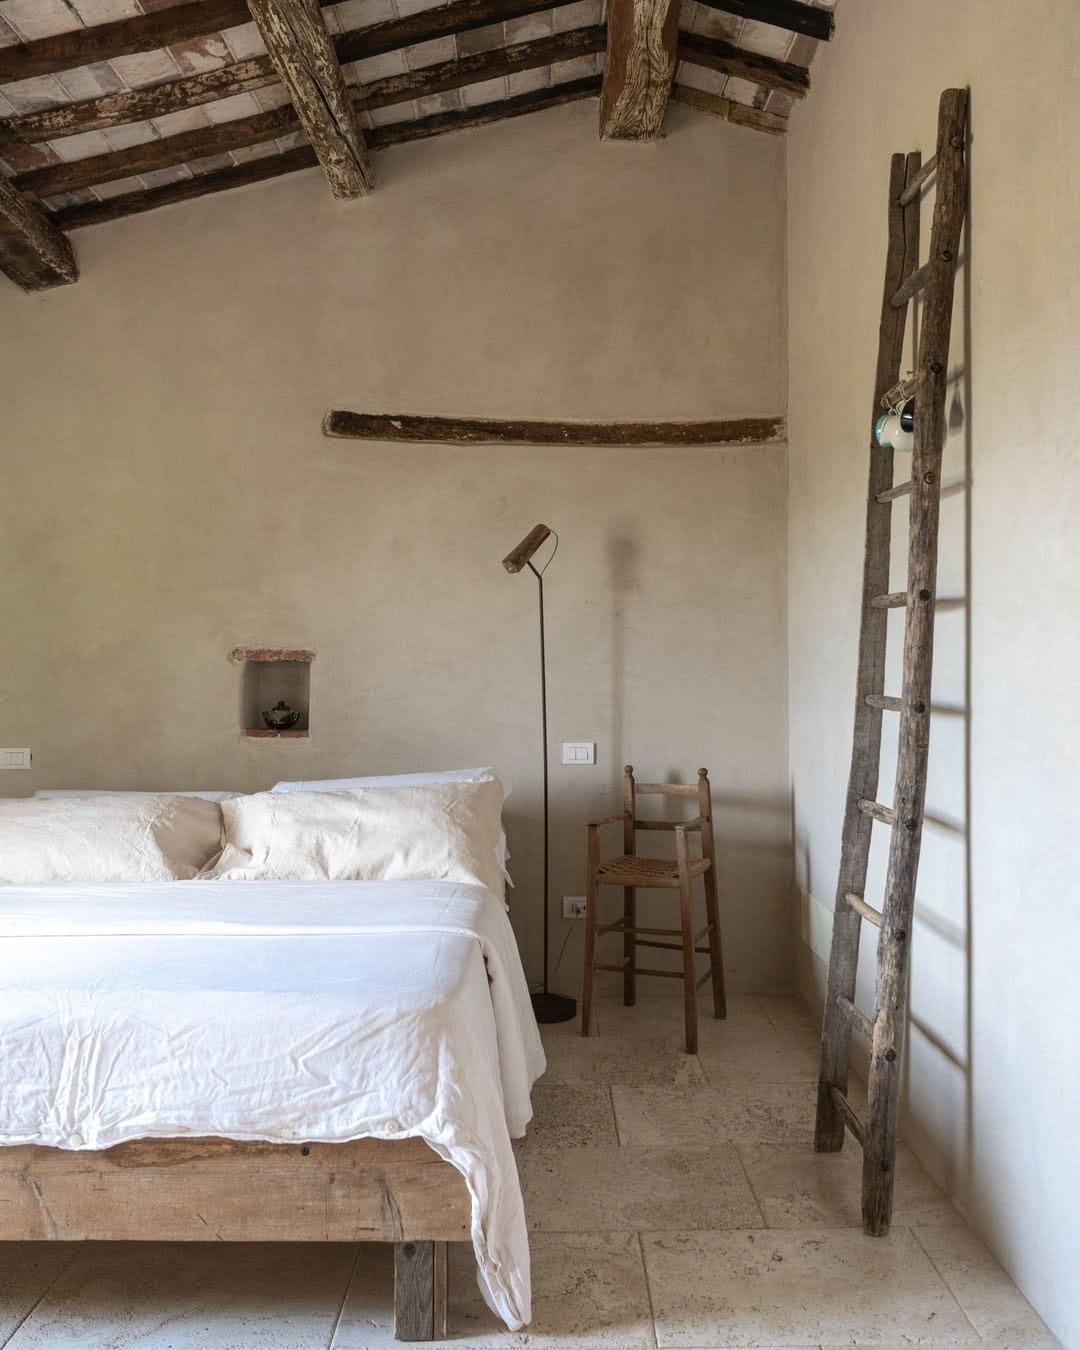 Follonico farmhouse: an authentic stay in Southern Tuscany